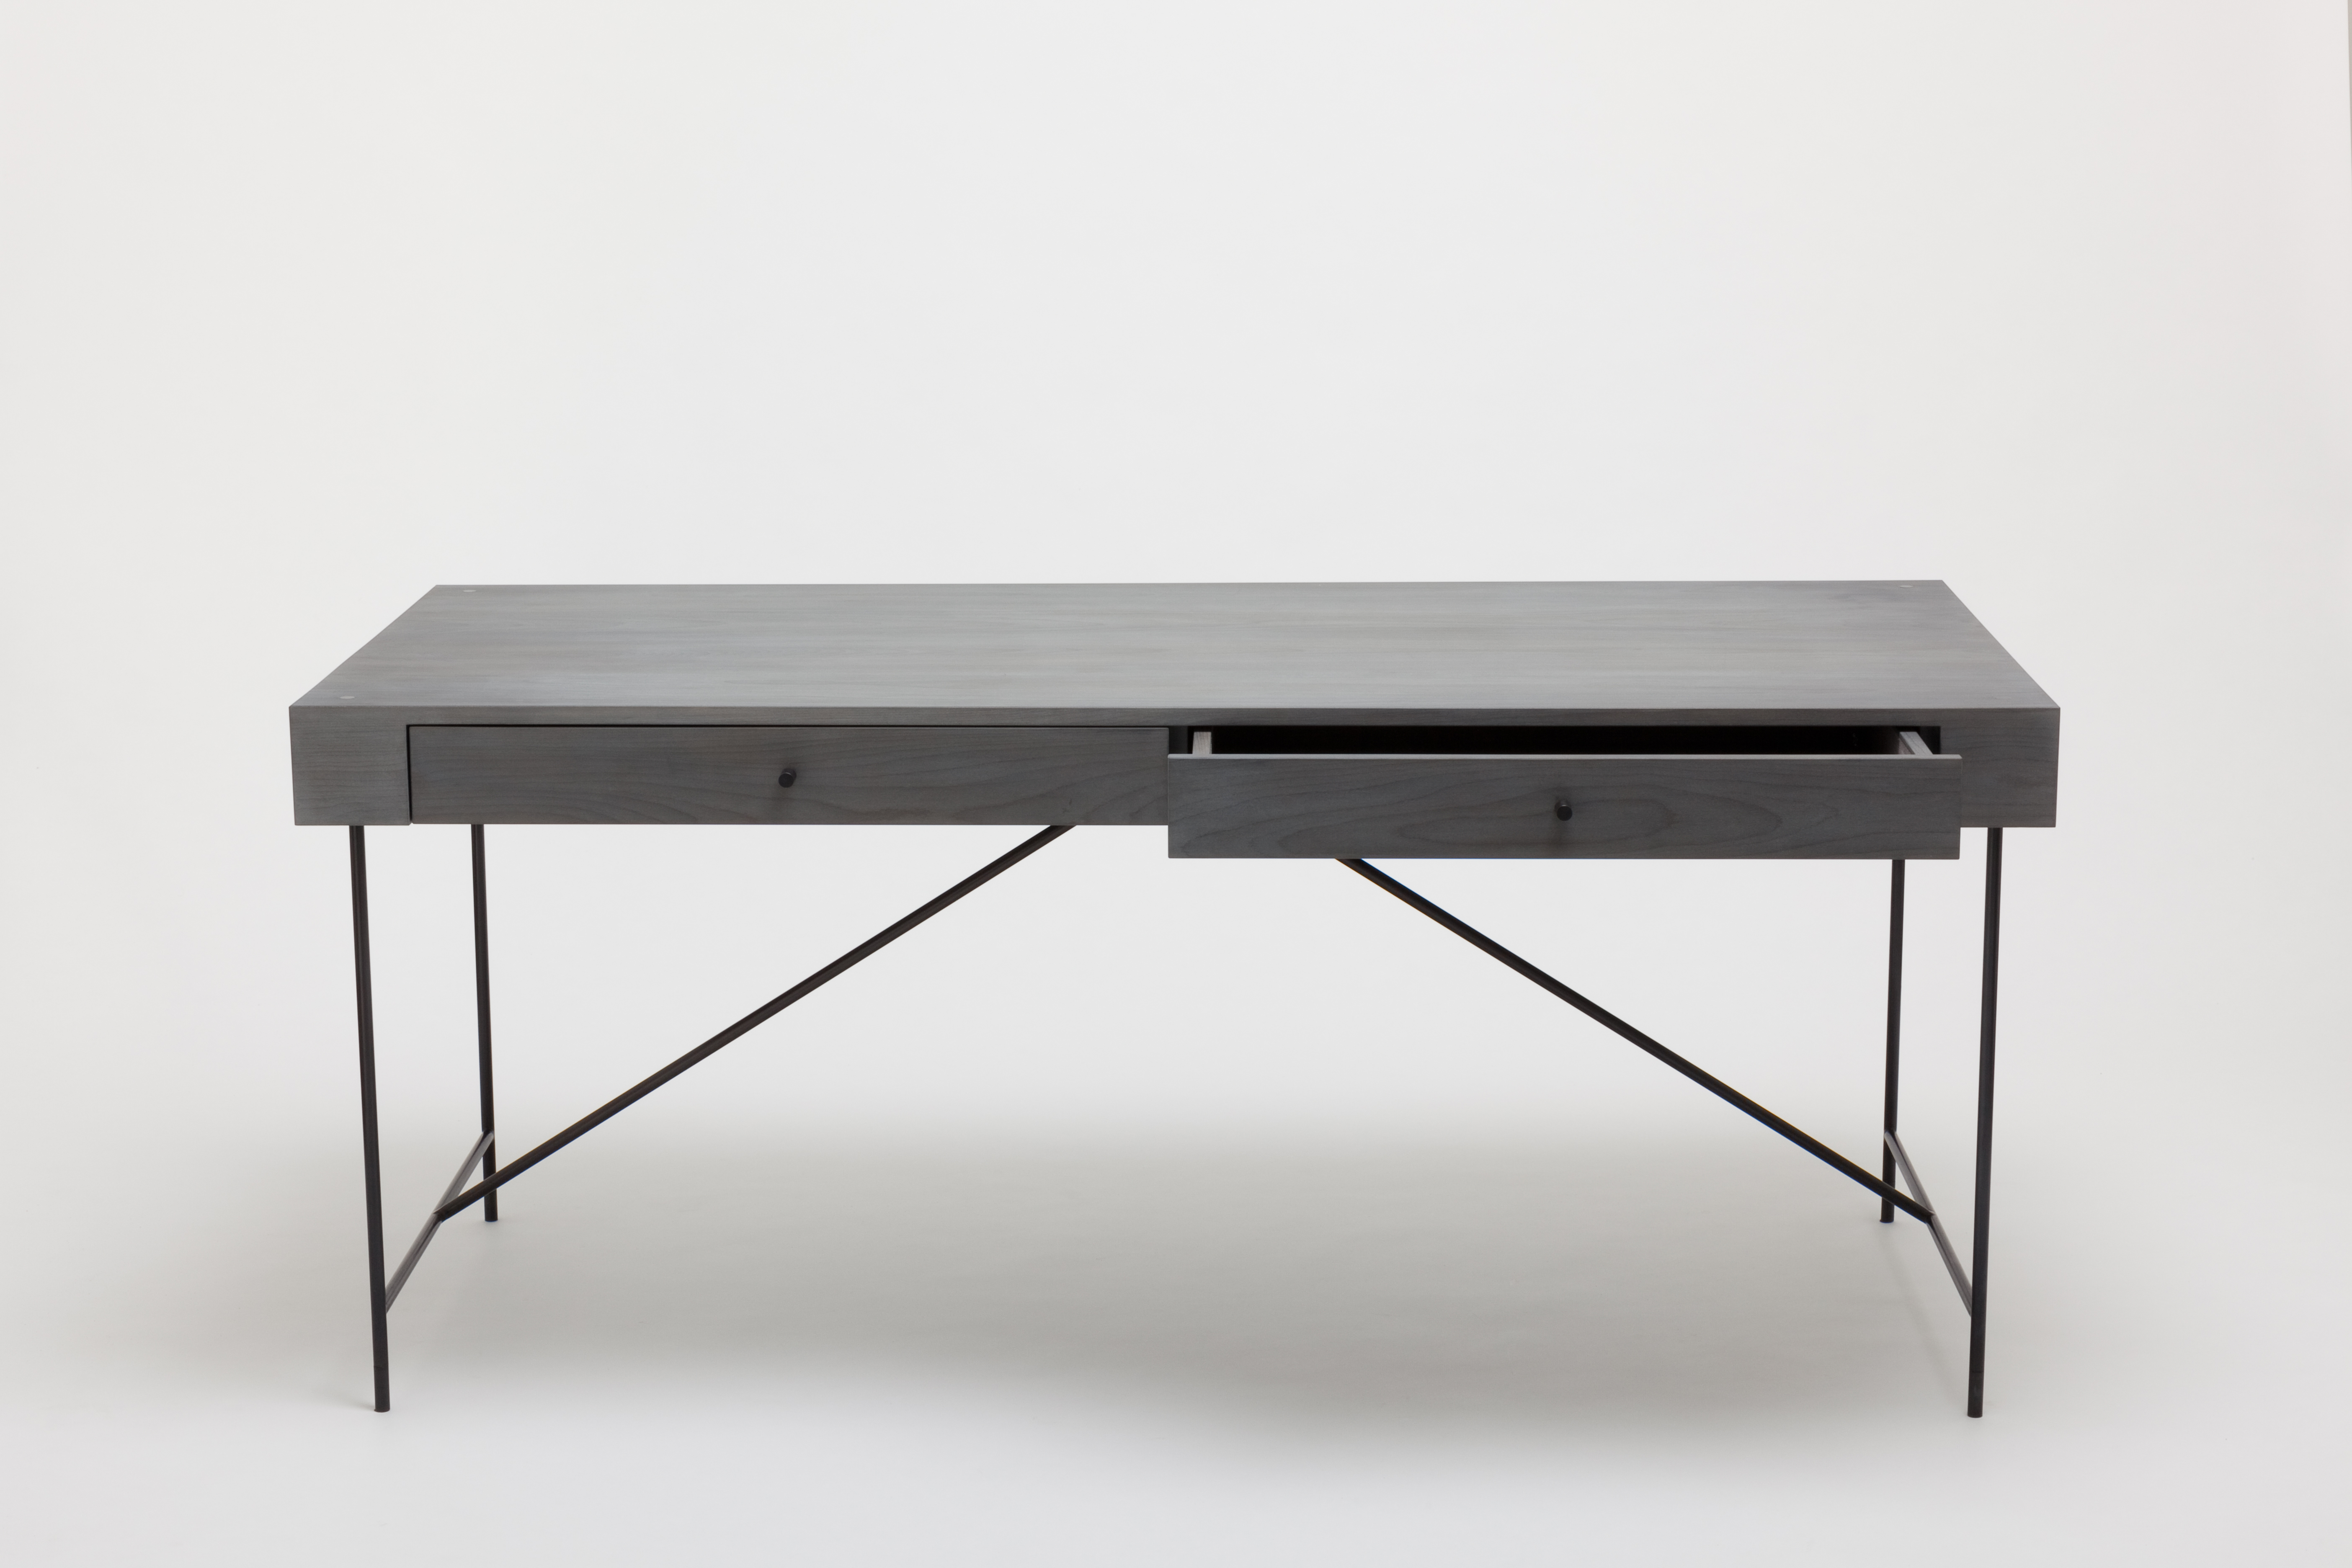 been successfully foundry to gray pdp added writing your cart desk living spaces qty has